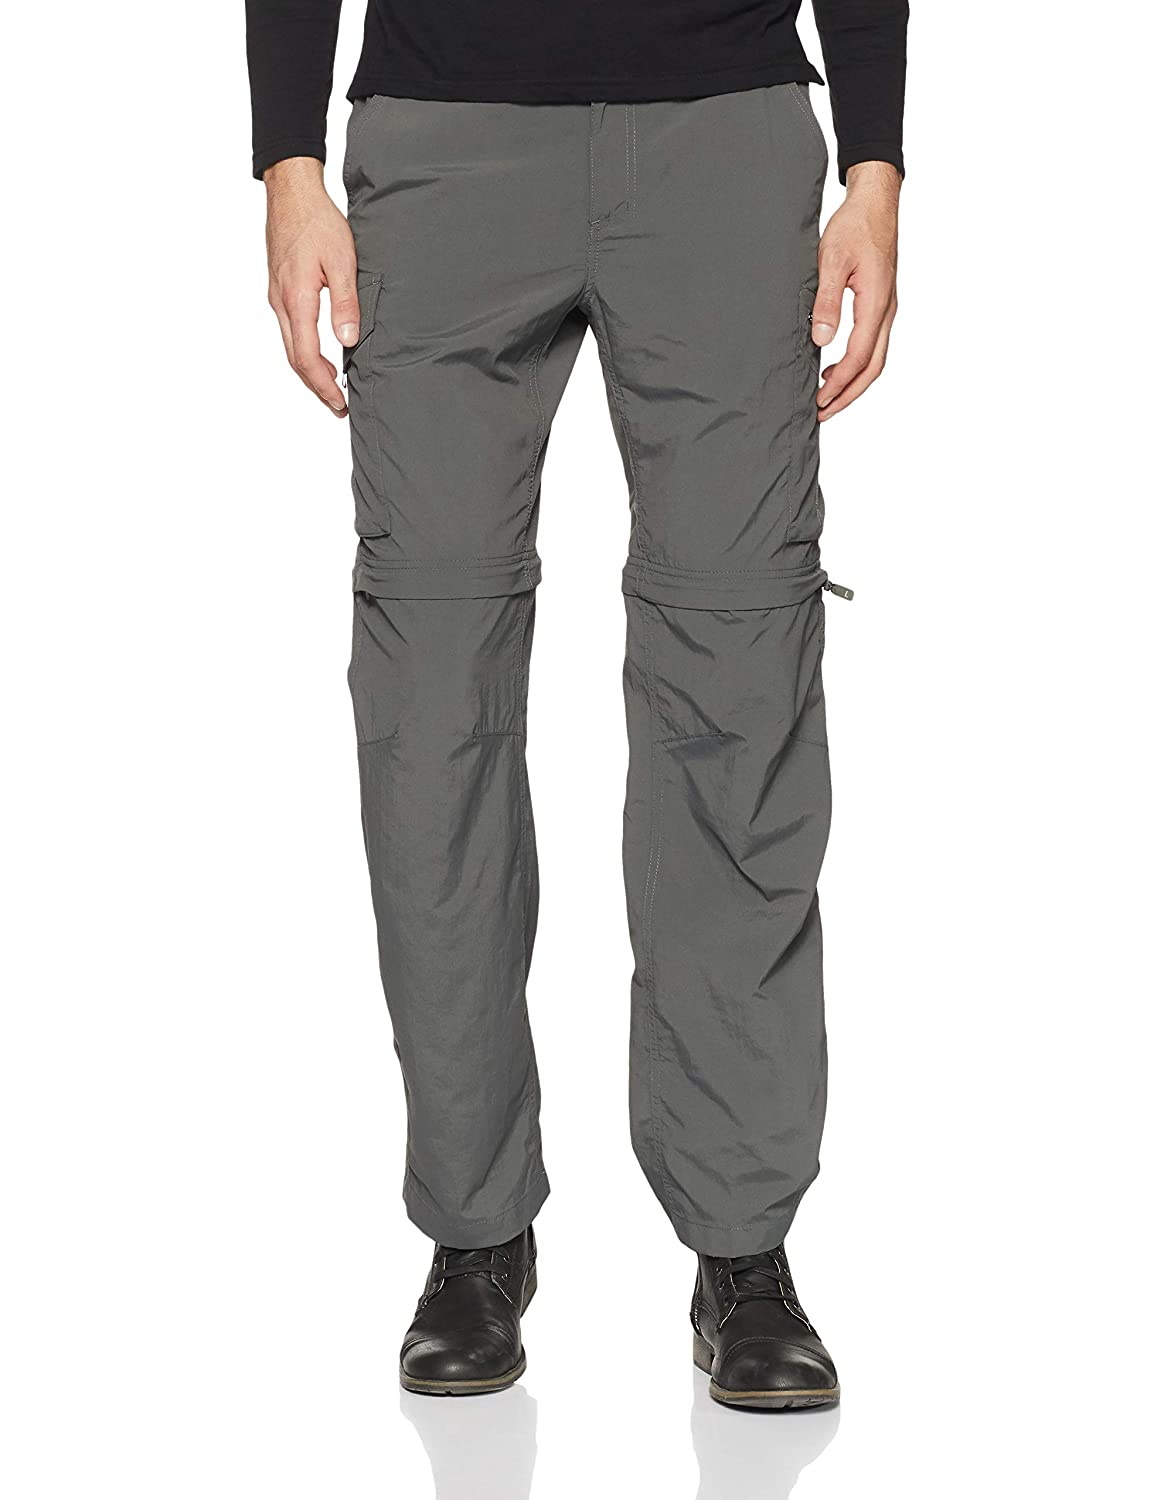 Columbia Silver Ridge Convertible Pant Columbia (Sporting Goods) AJ8004-160-36-PARENT